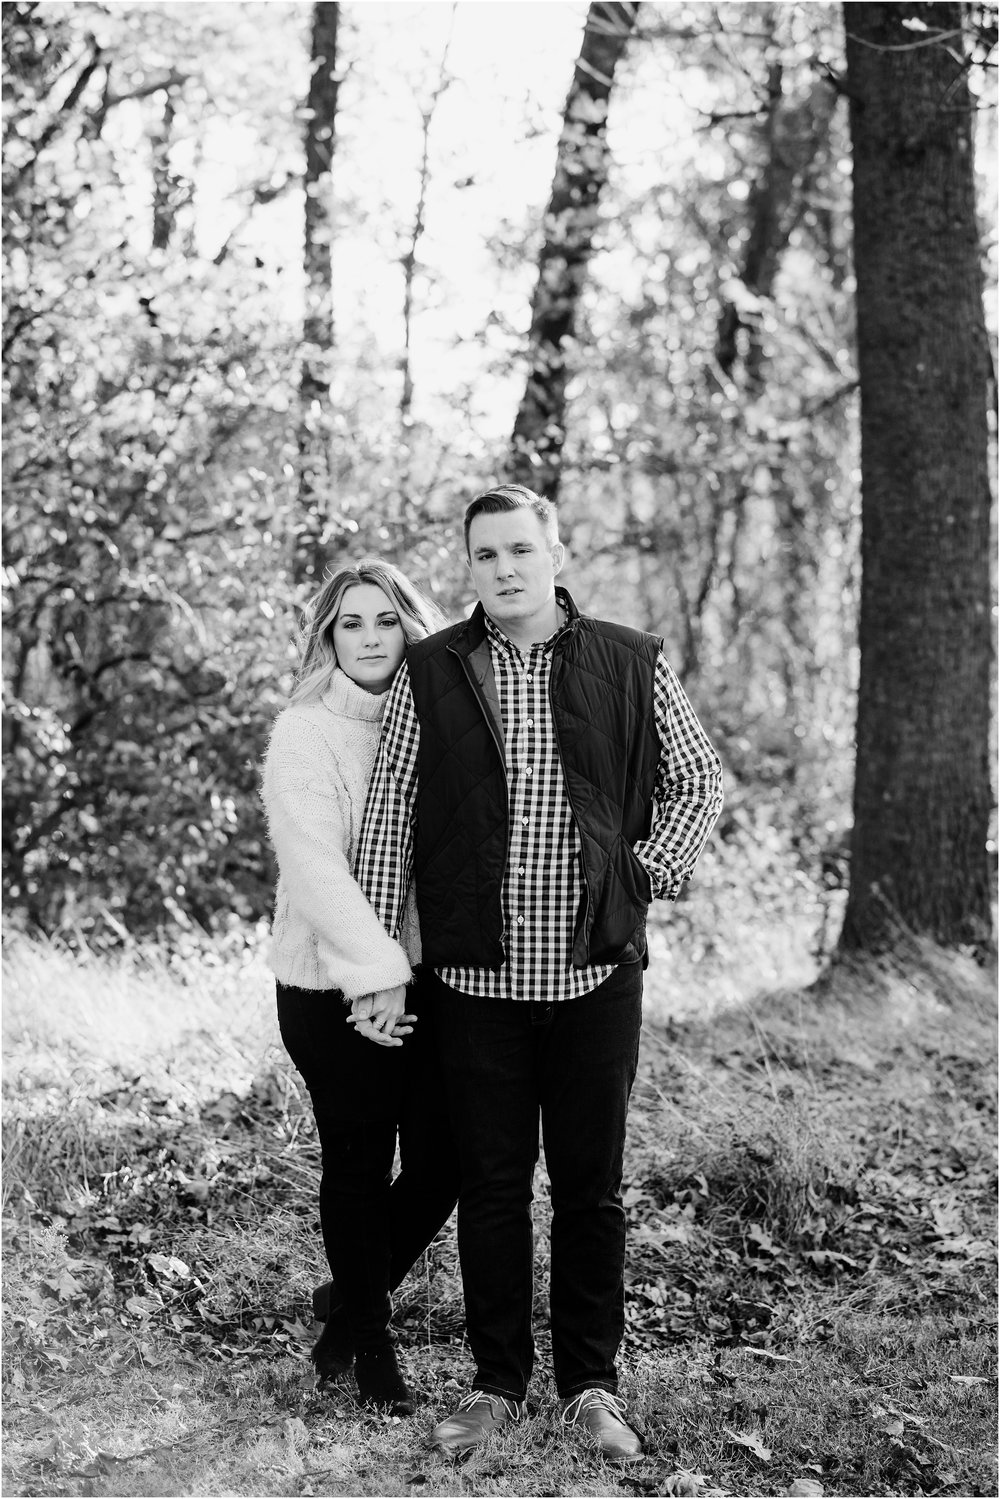 hannah leigh photography Engagement Session Lancaster PA_2295.jpg